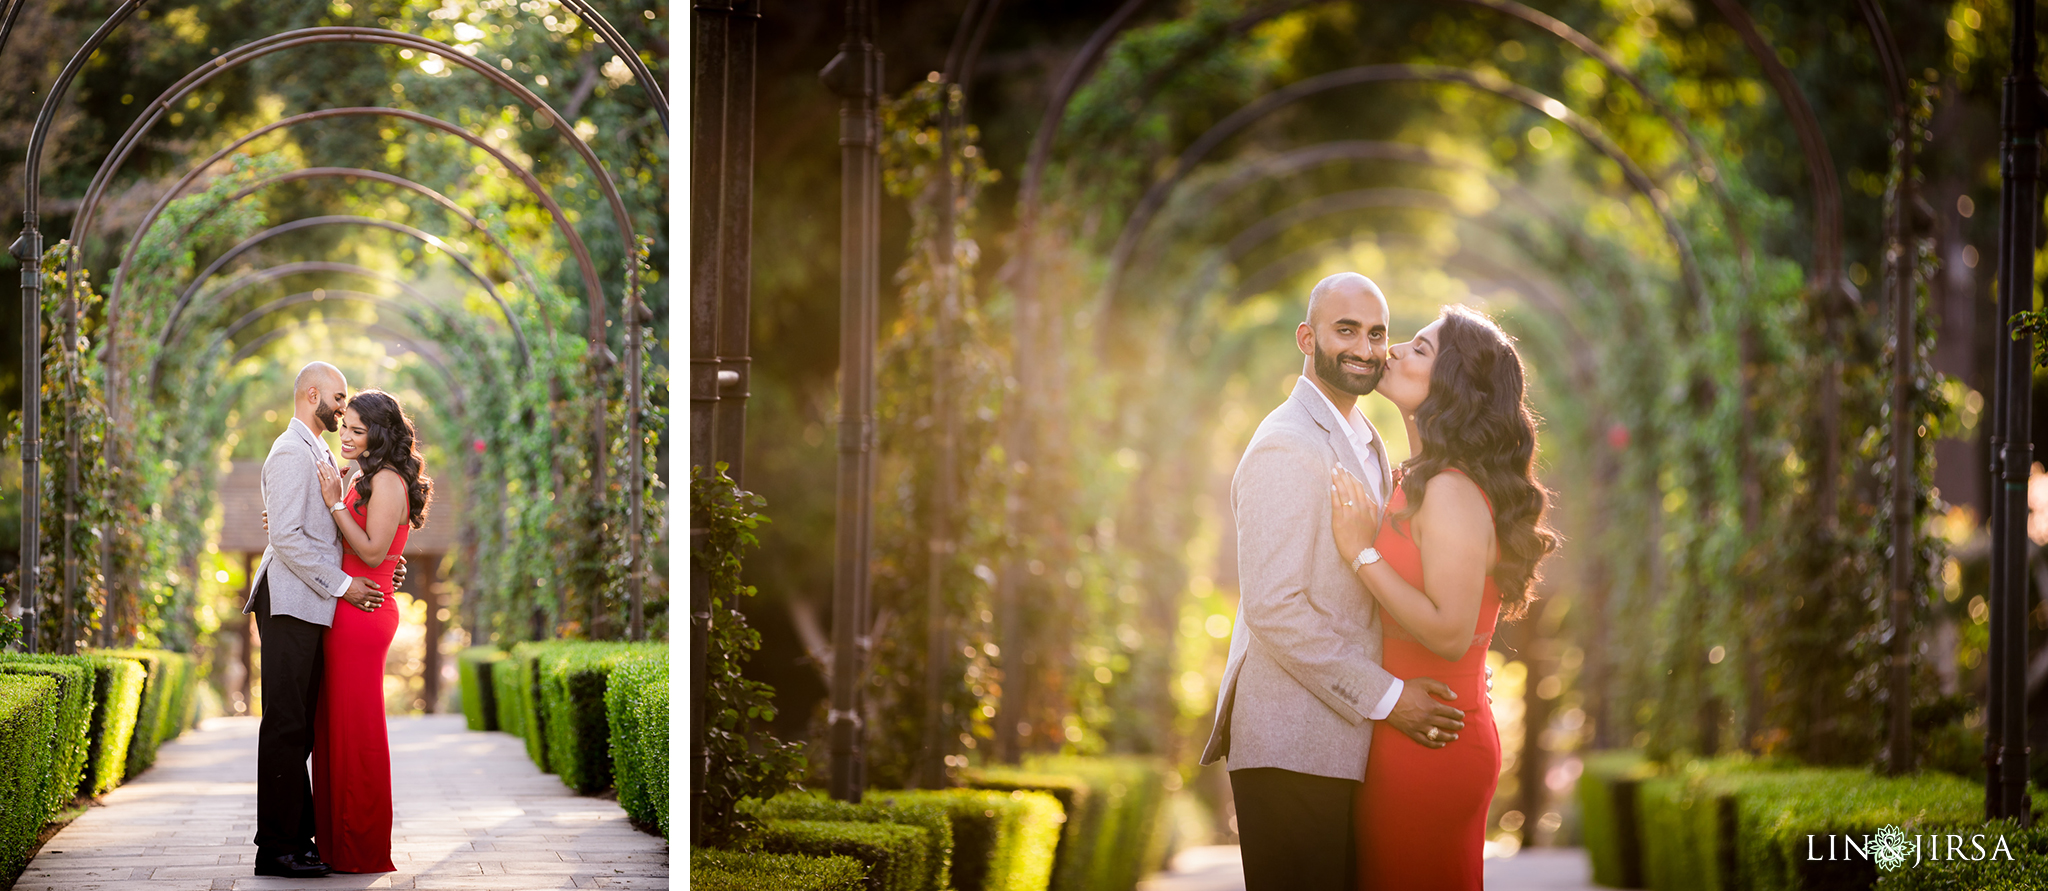 19-huntington-garden-engagement-photography